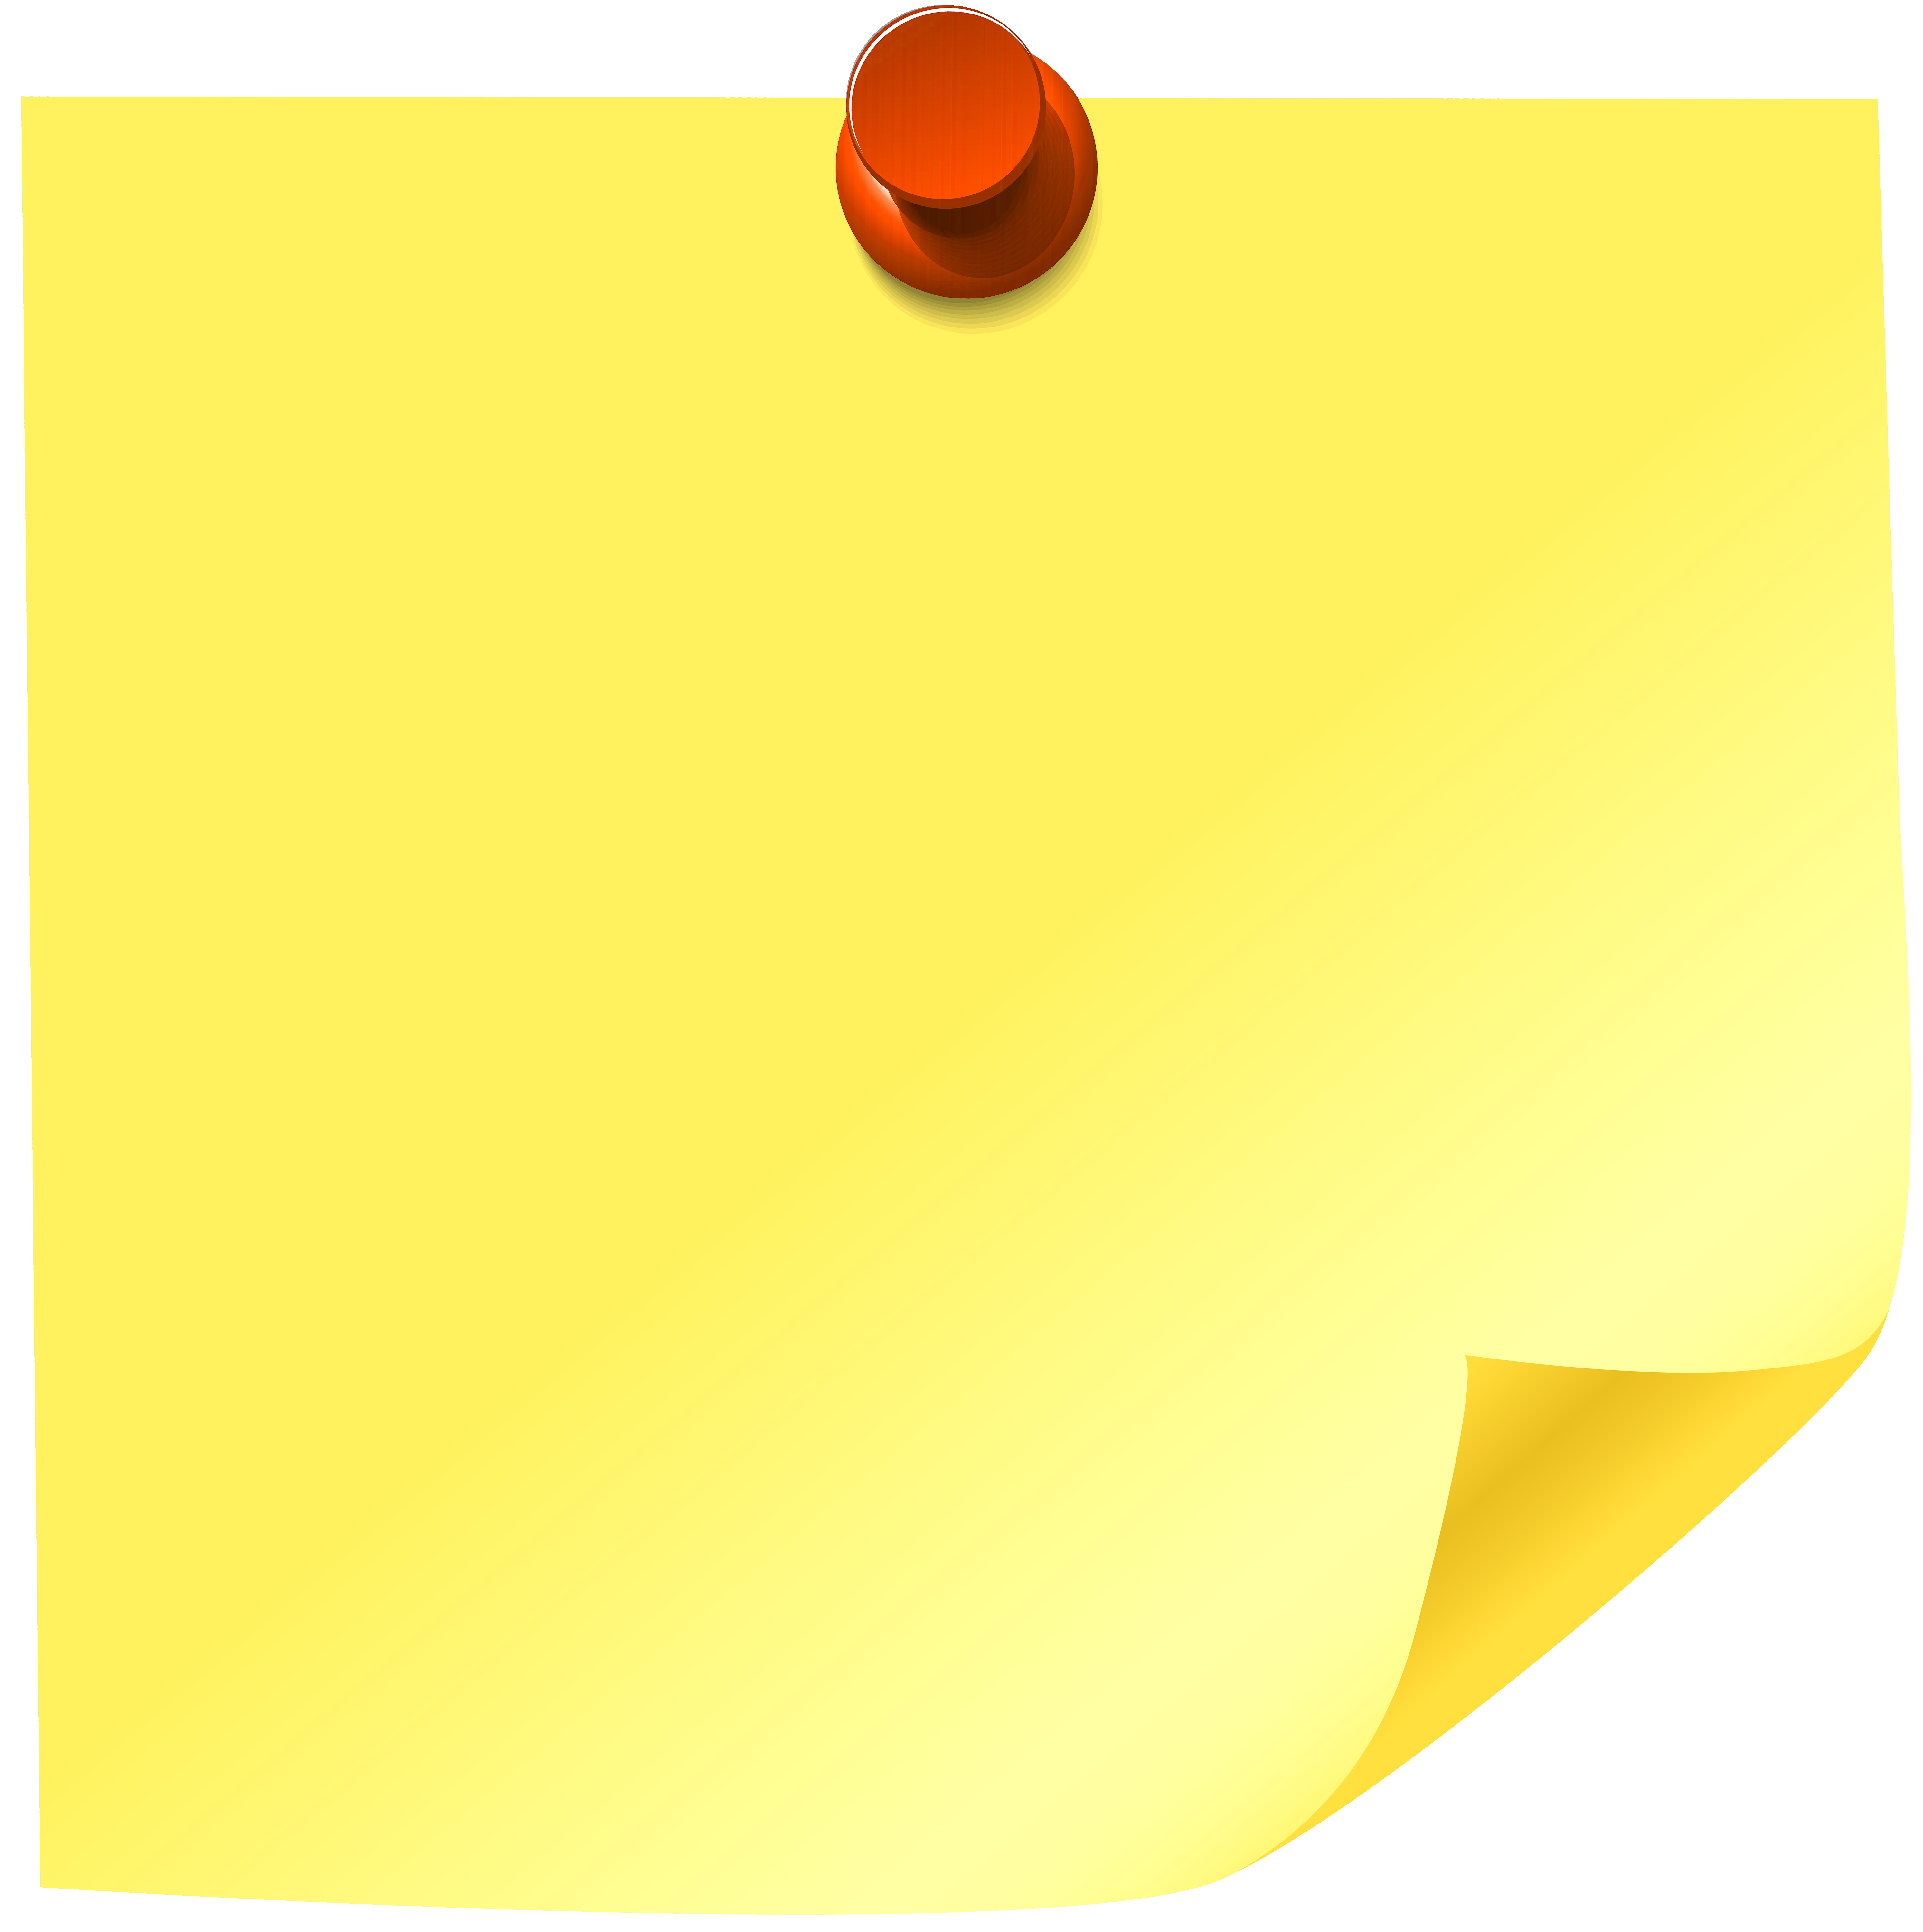 Sticky Note Clipart Free Download Clip Art.